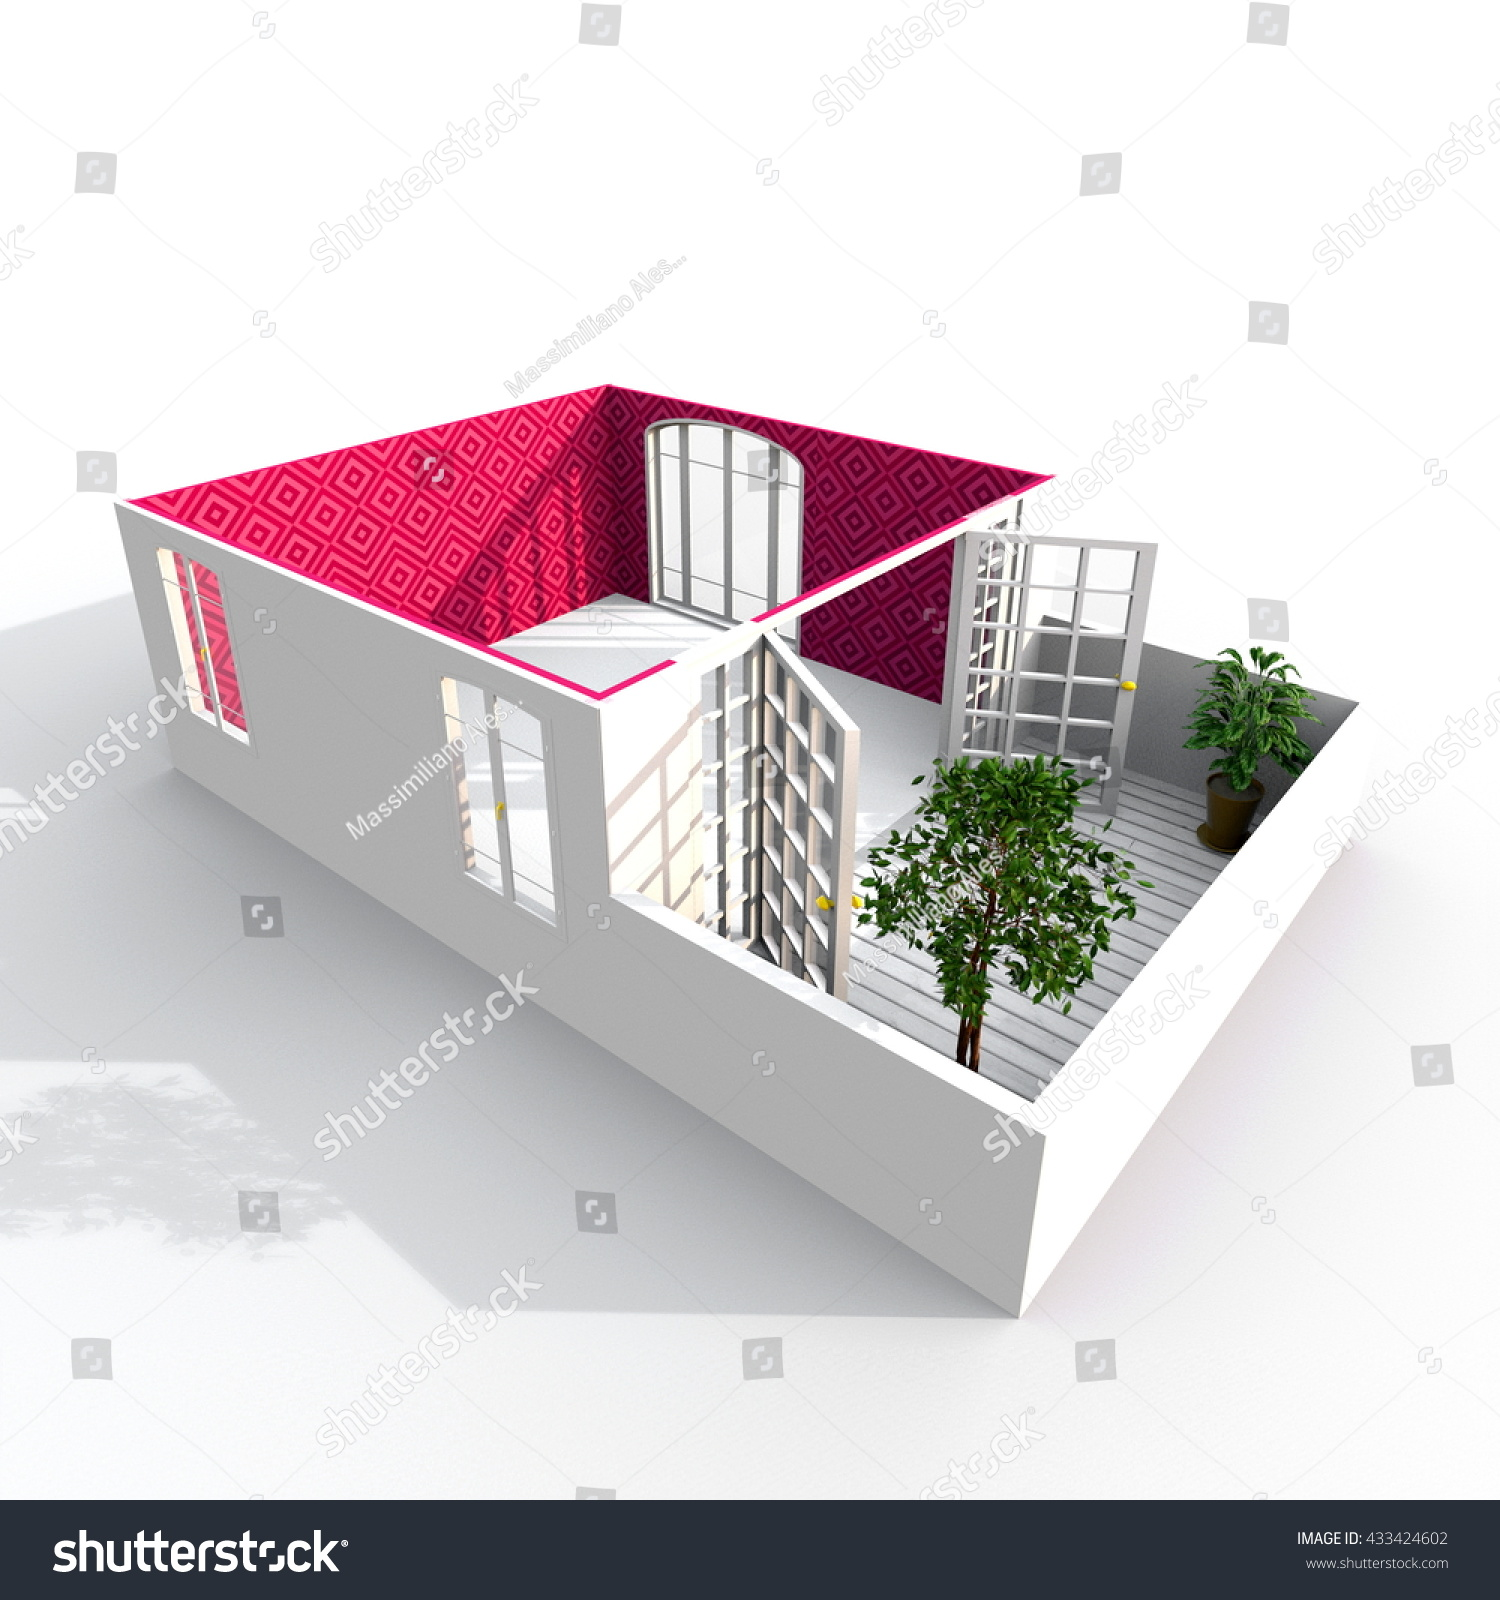 3d interior rendering perspective view empty stock illustration